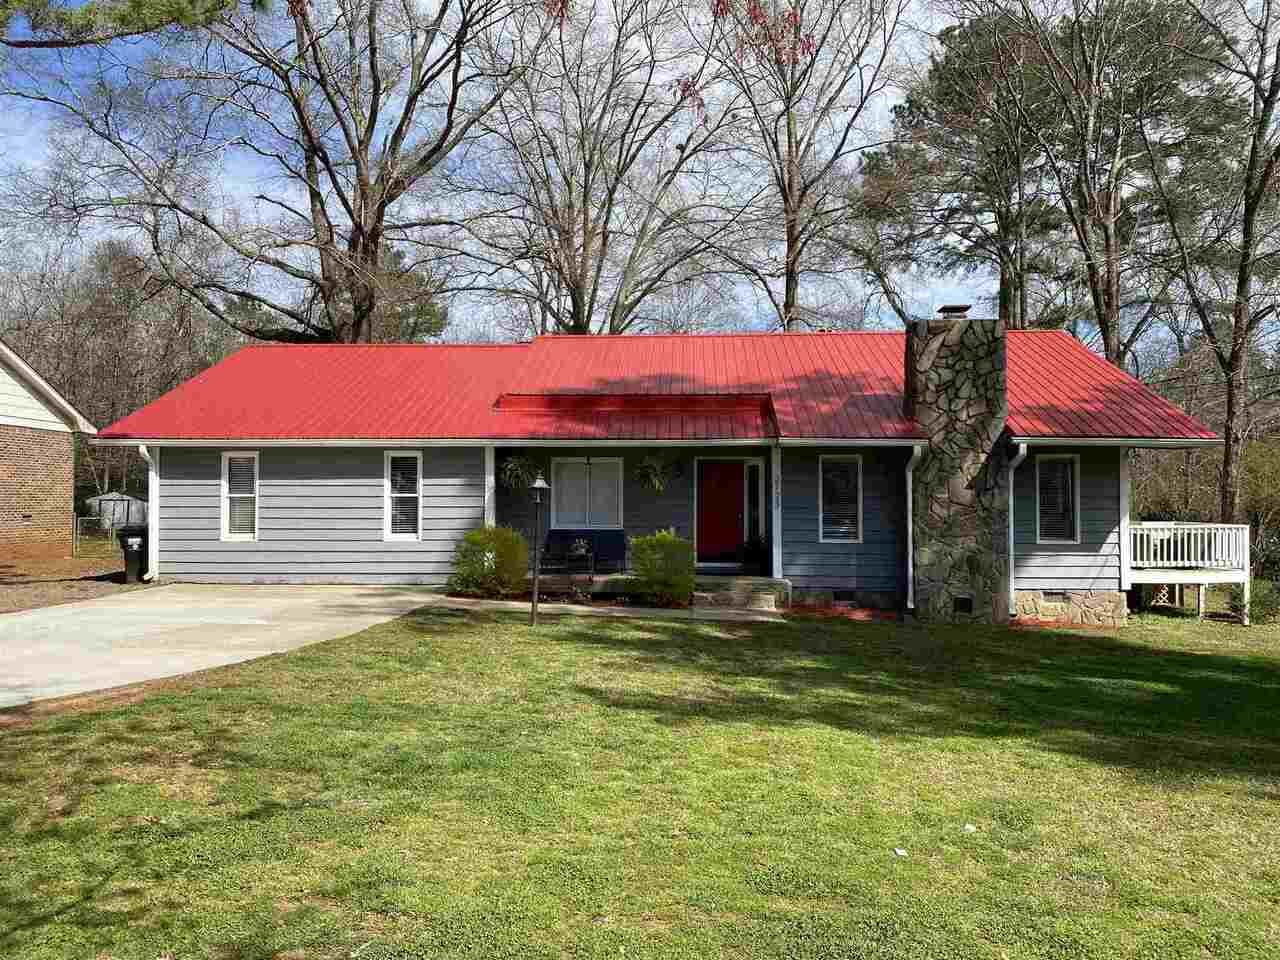 2123 Honeybee Creek Dr, Griffin, GA 30224 - #: 8941738